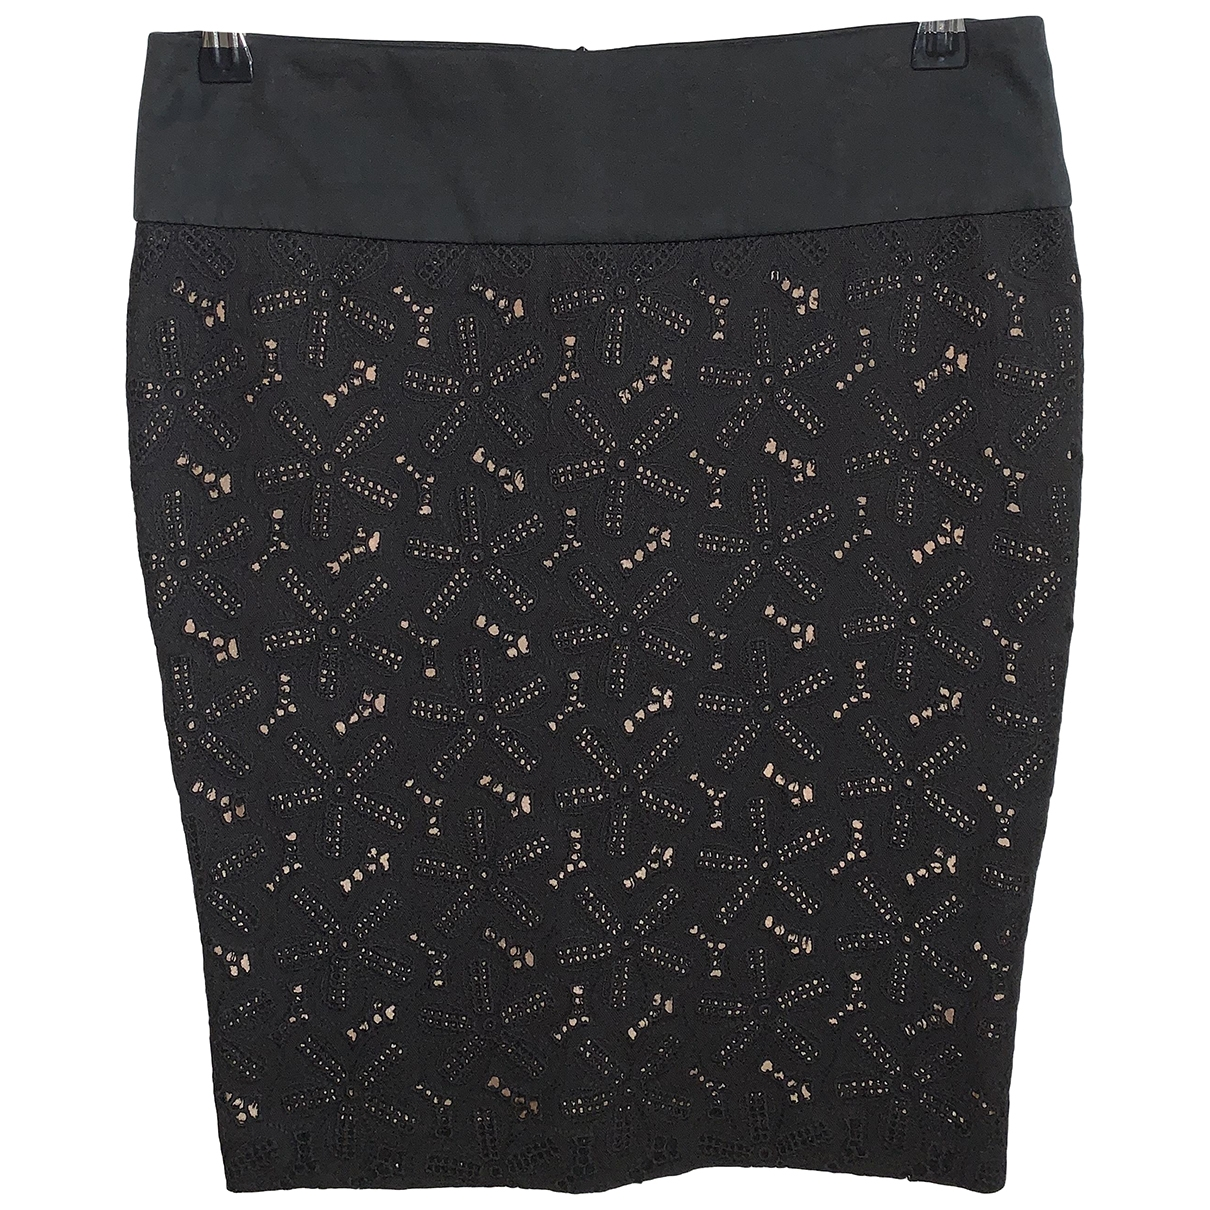 Pinko \N Black Cotton skirt for Women 38 IT